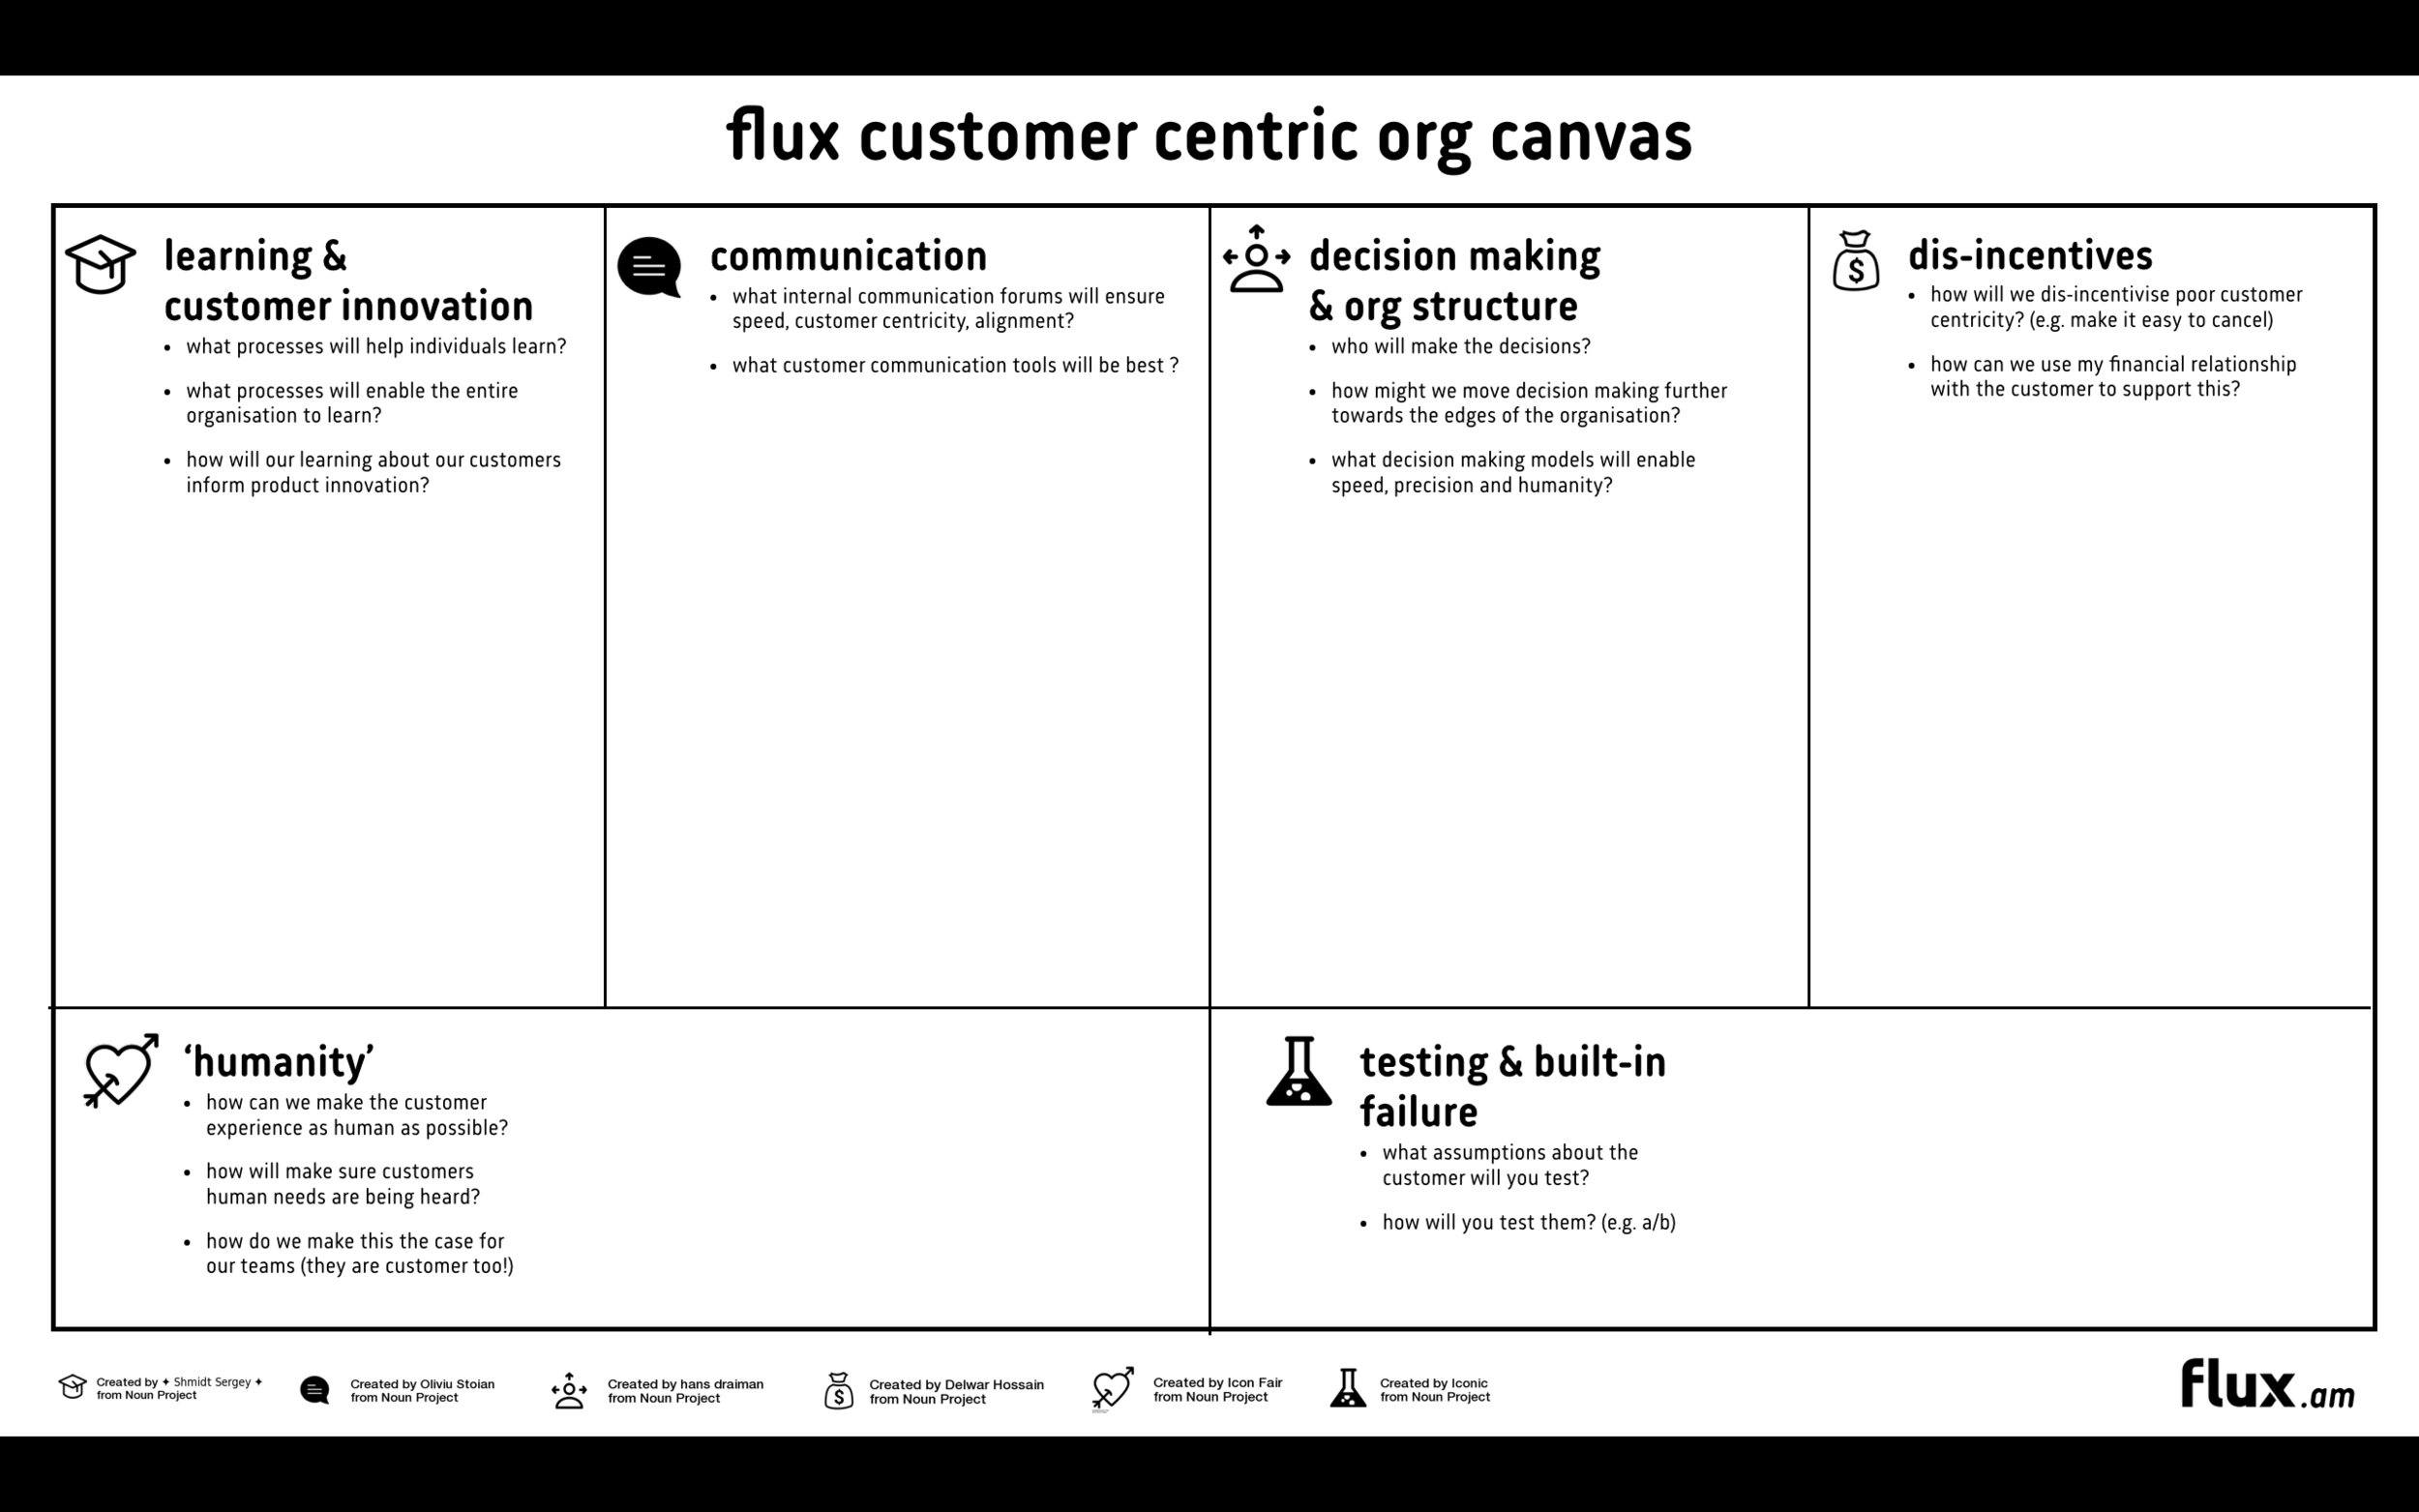 PLANNING CANVAS: What next?